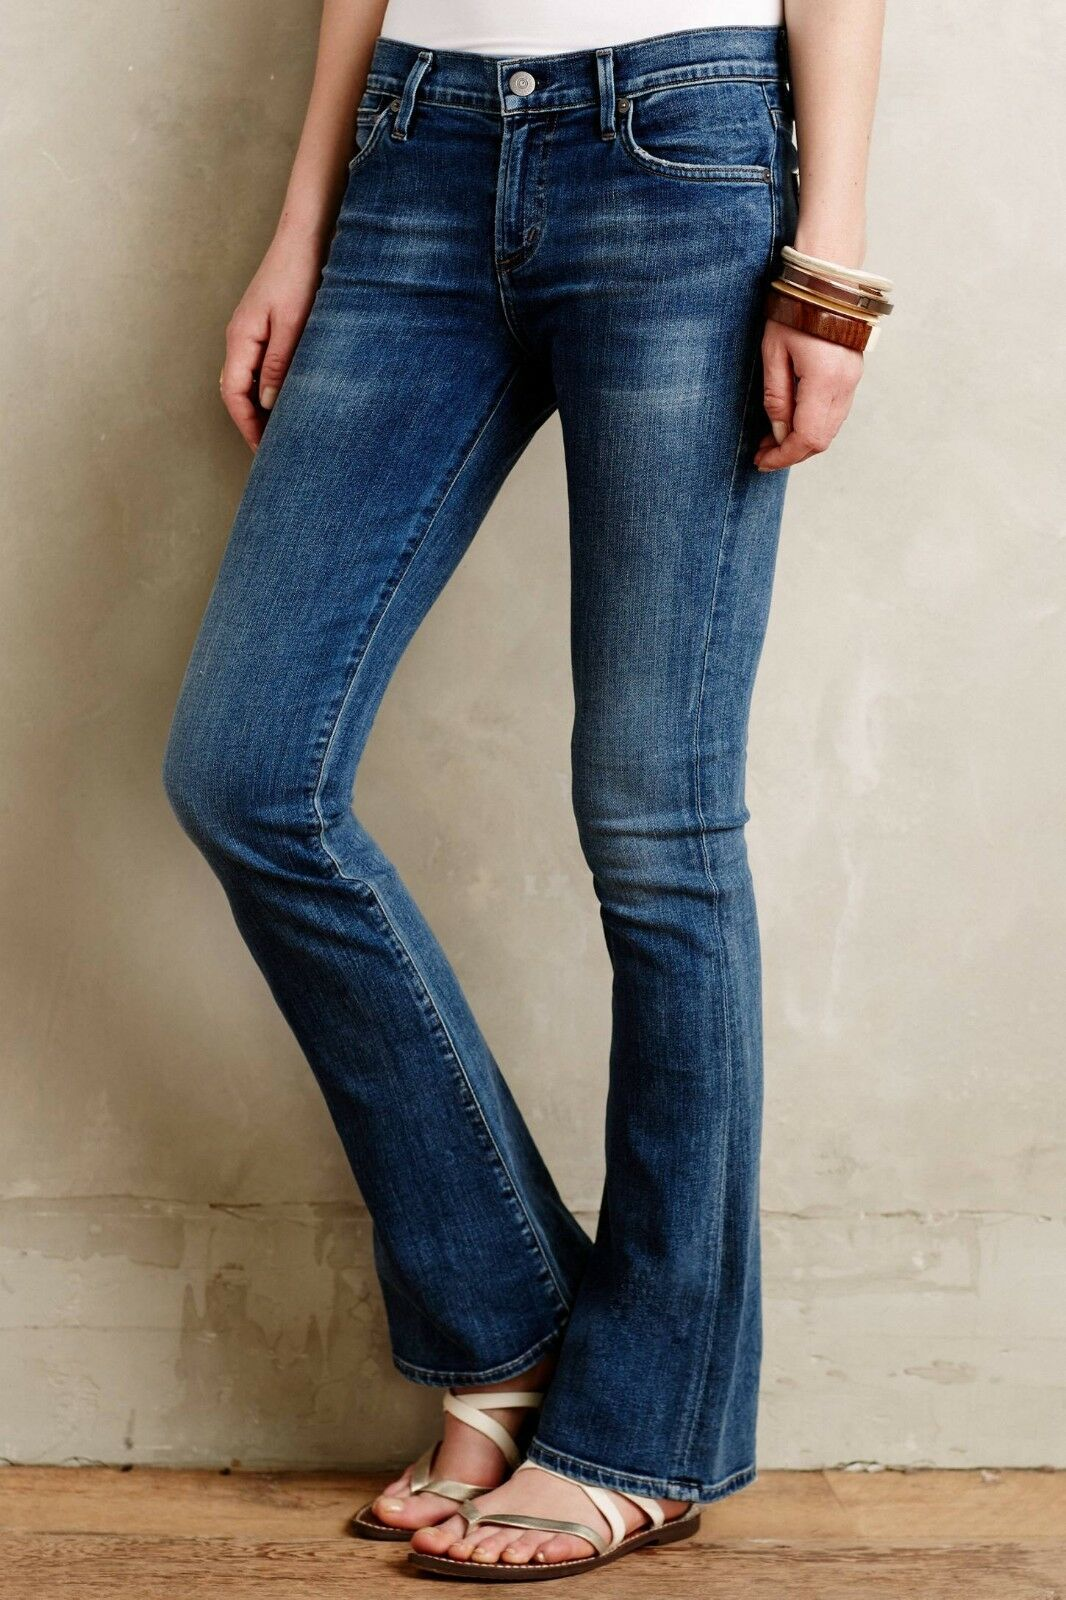 NWT CITIZENS OF HUMANITY EMANNUELLE SOLICE SCULPT SLIM BOOT JEANS 27P